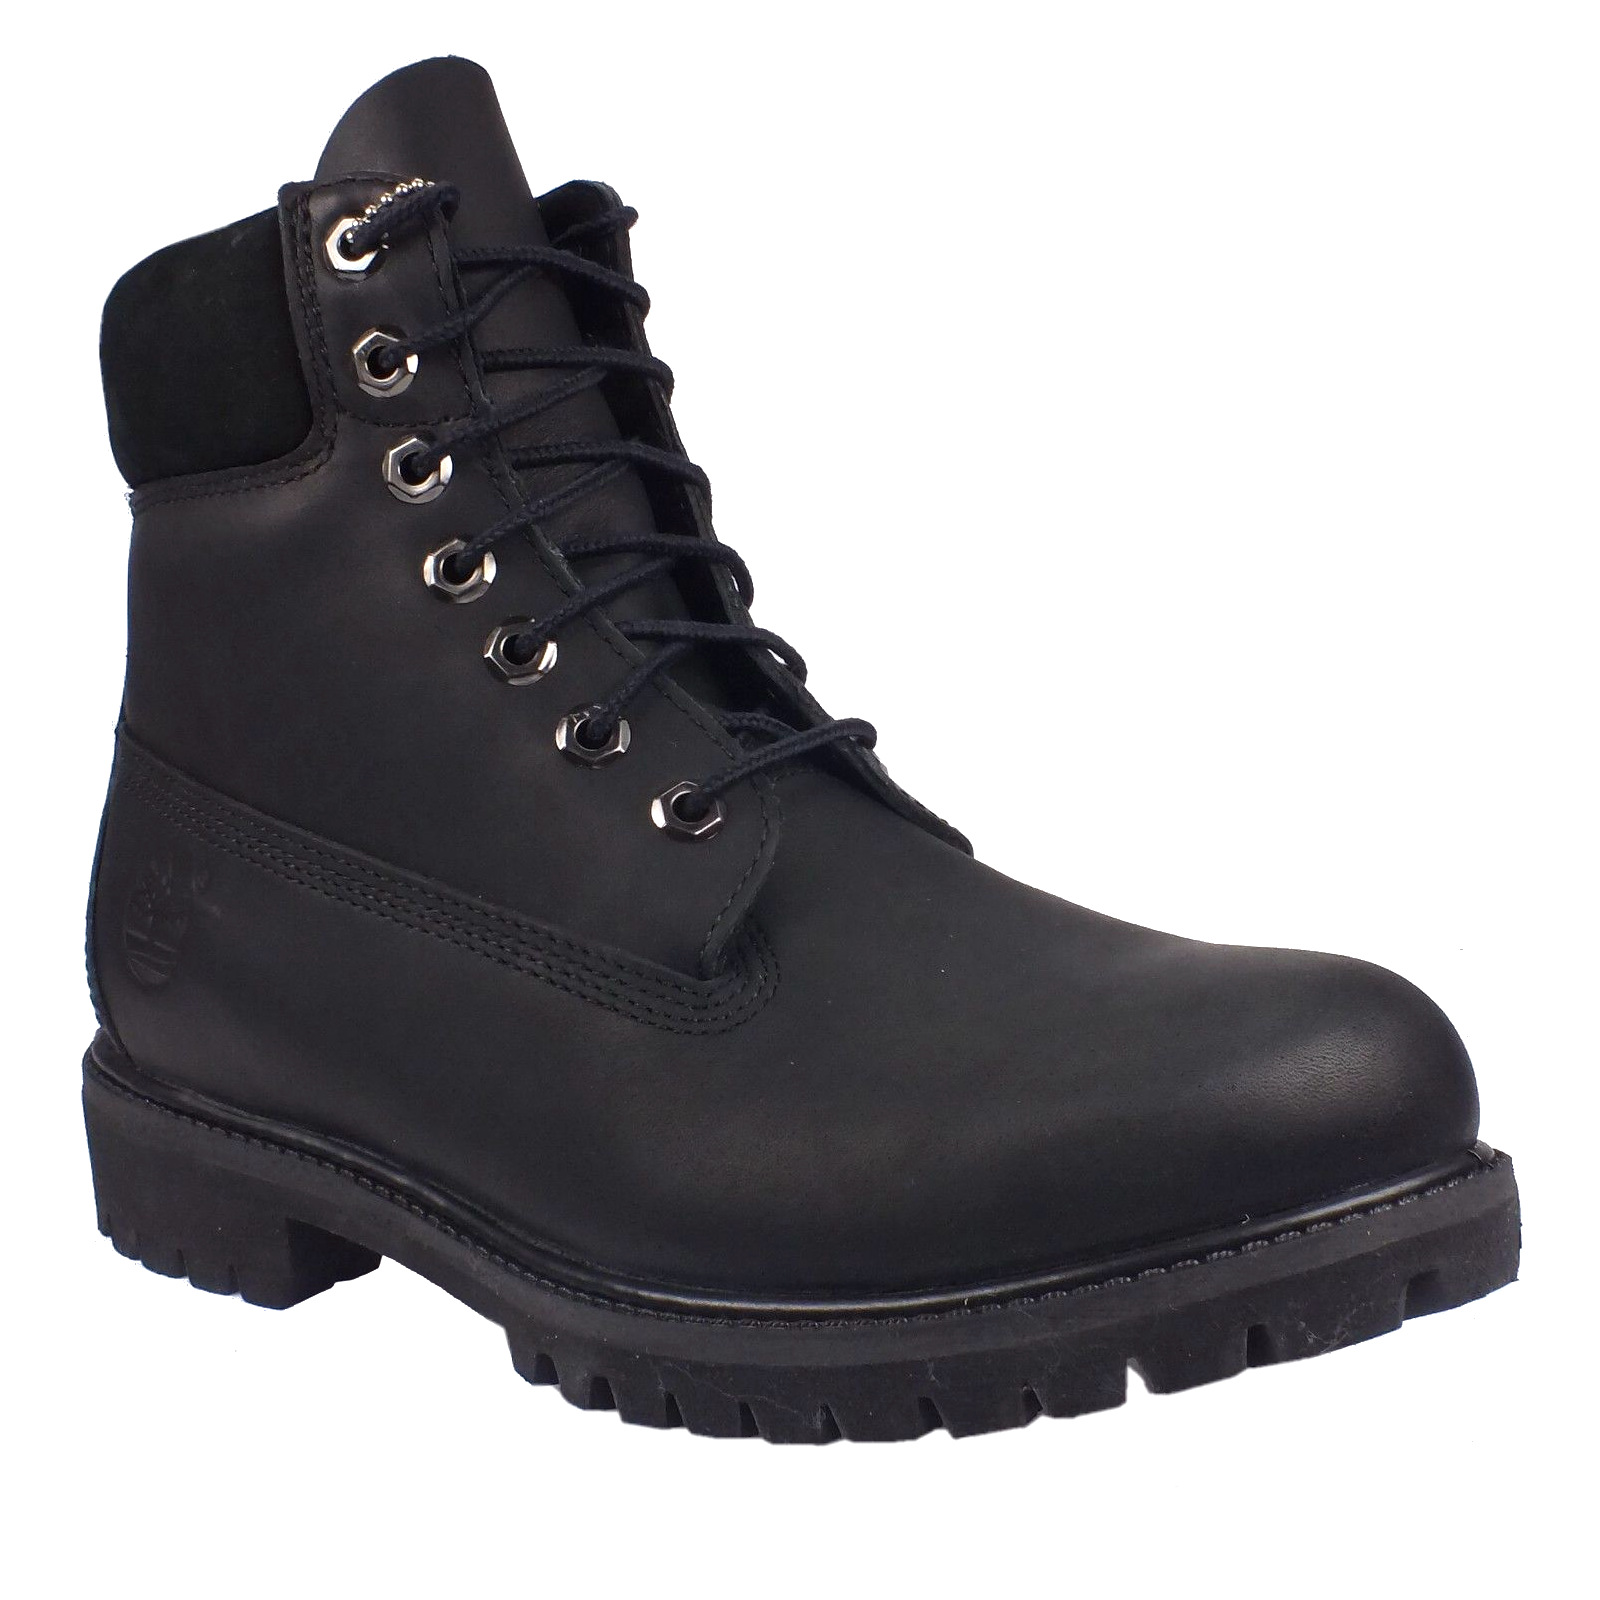 timberland 6 inch premium waterproof boot men 39 s shoes boots winterboots ebay. Black Bedroom Furniture Sets. Home Design Ideas